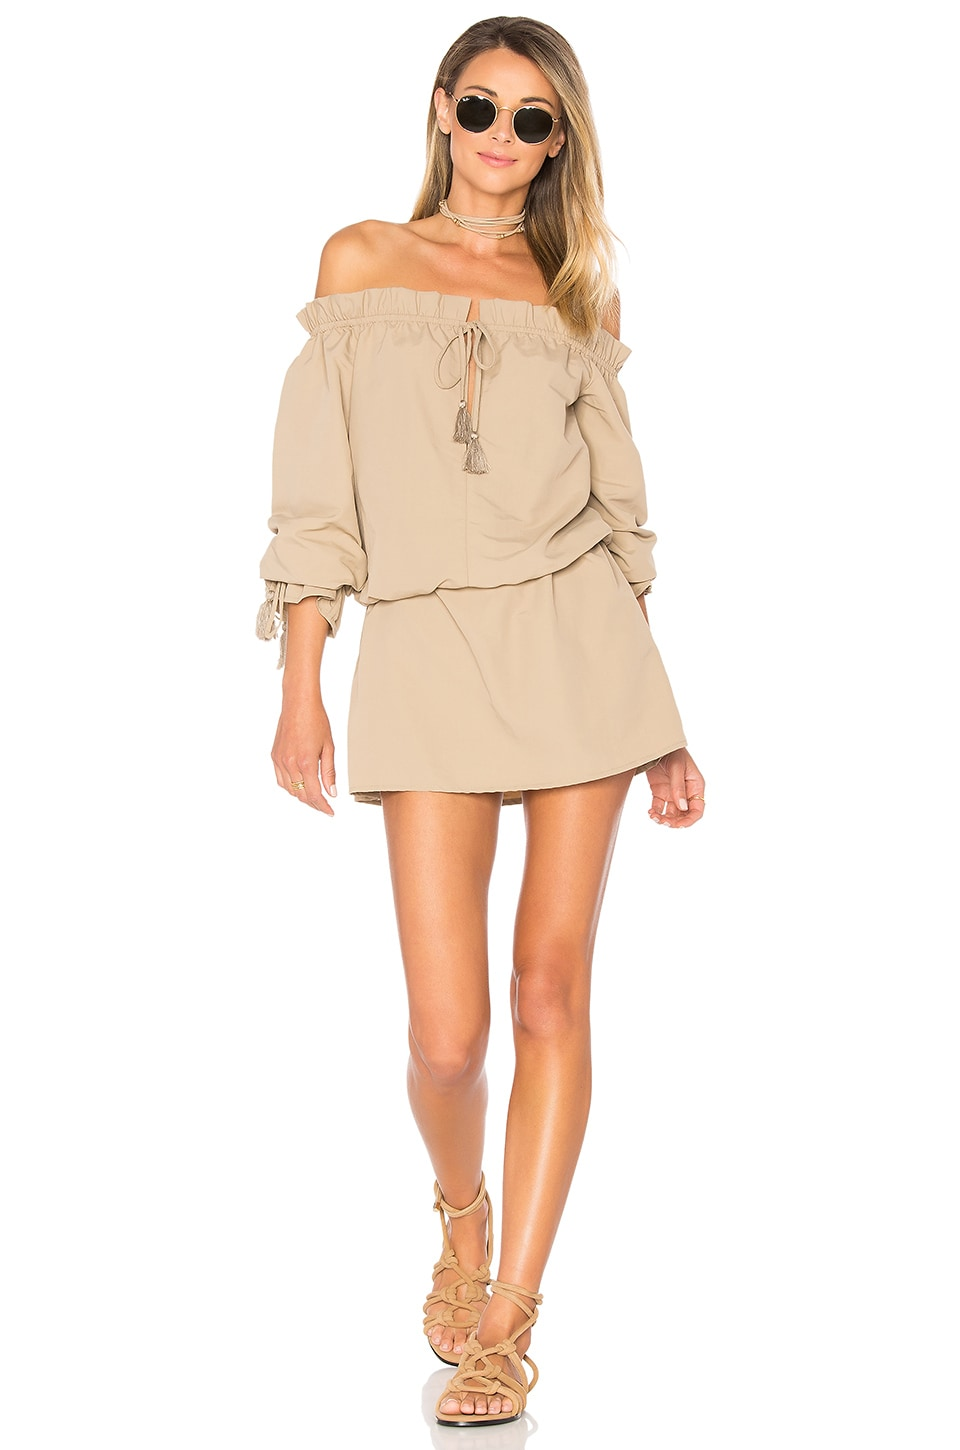 Tularosa x REVOLVE Falon Dress in Taupe